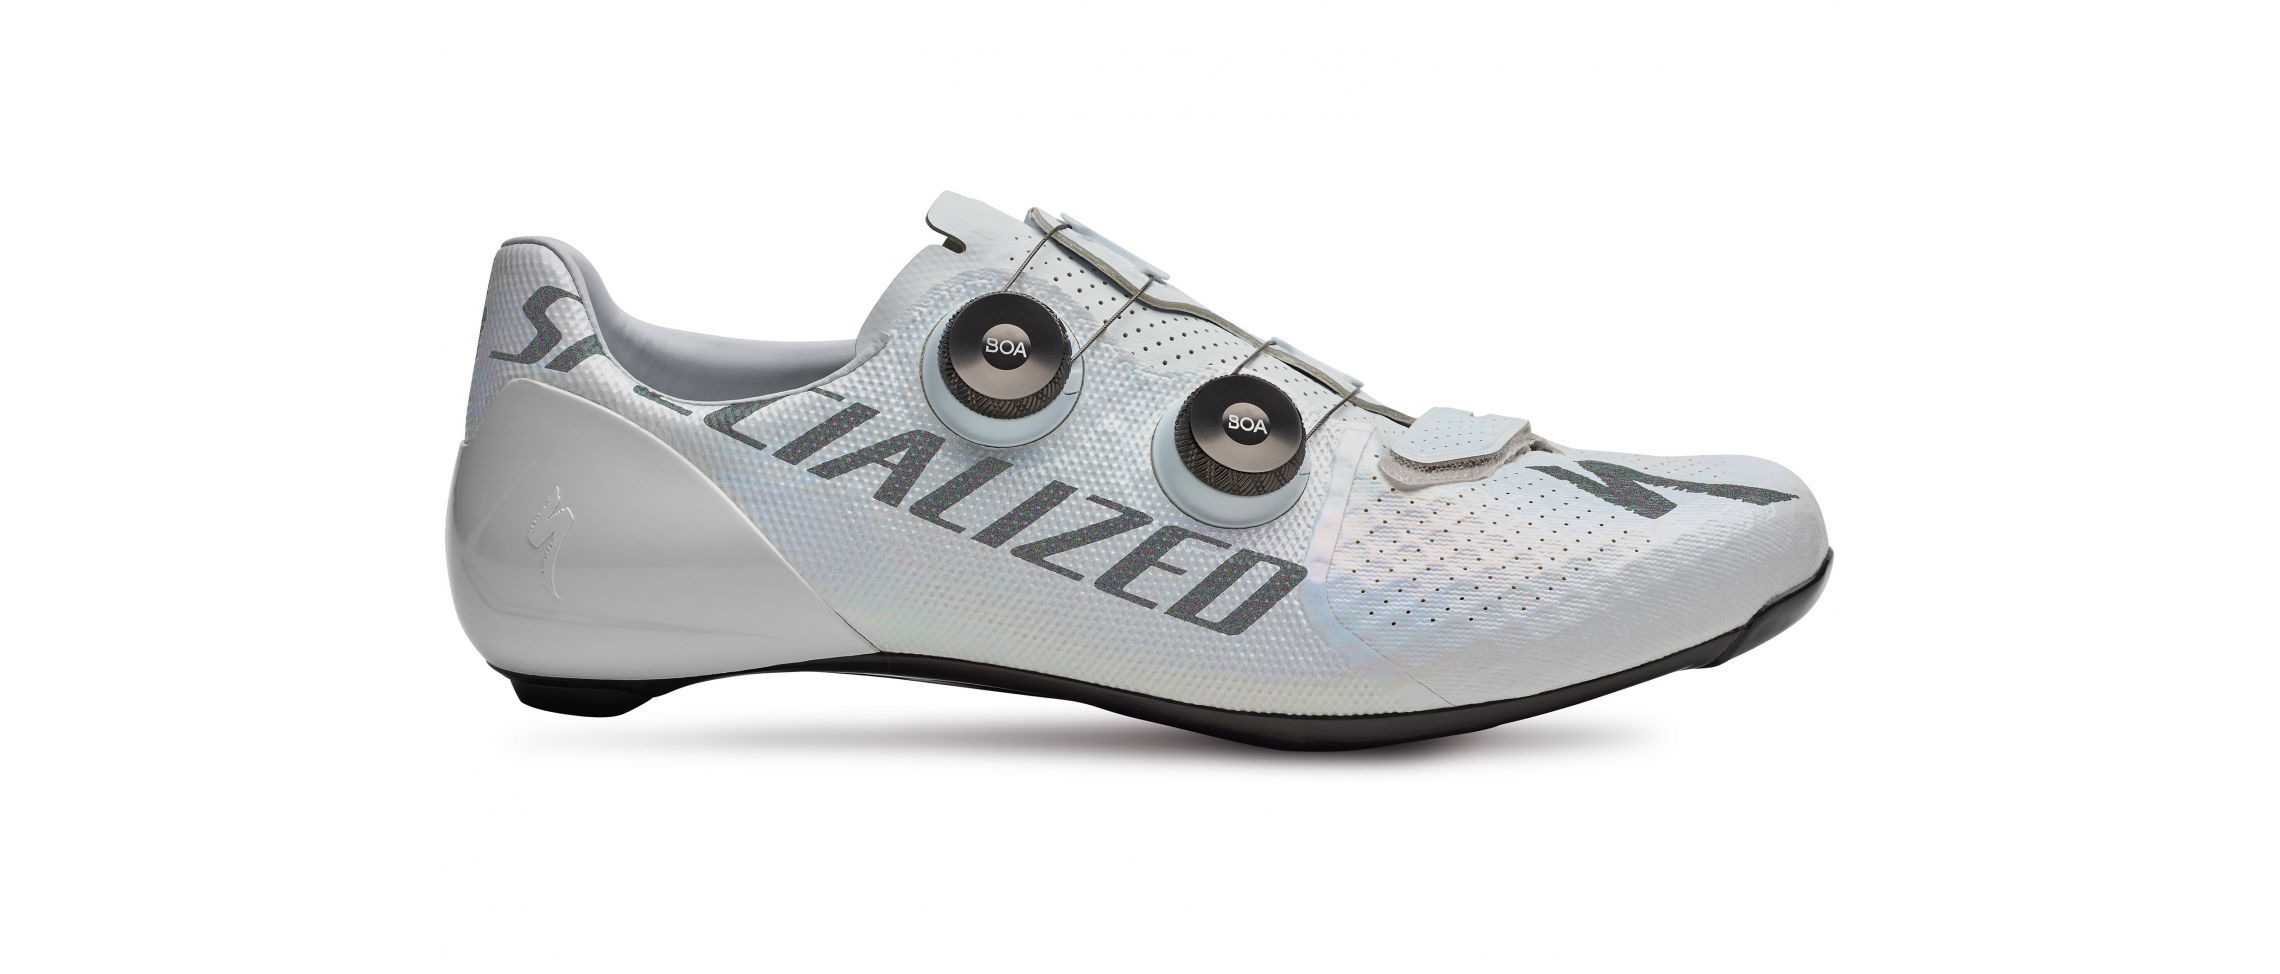 S-Works 7 Sagan Collection Zapatillas Carretera Specialized Overexposed 1 IBKBike.es